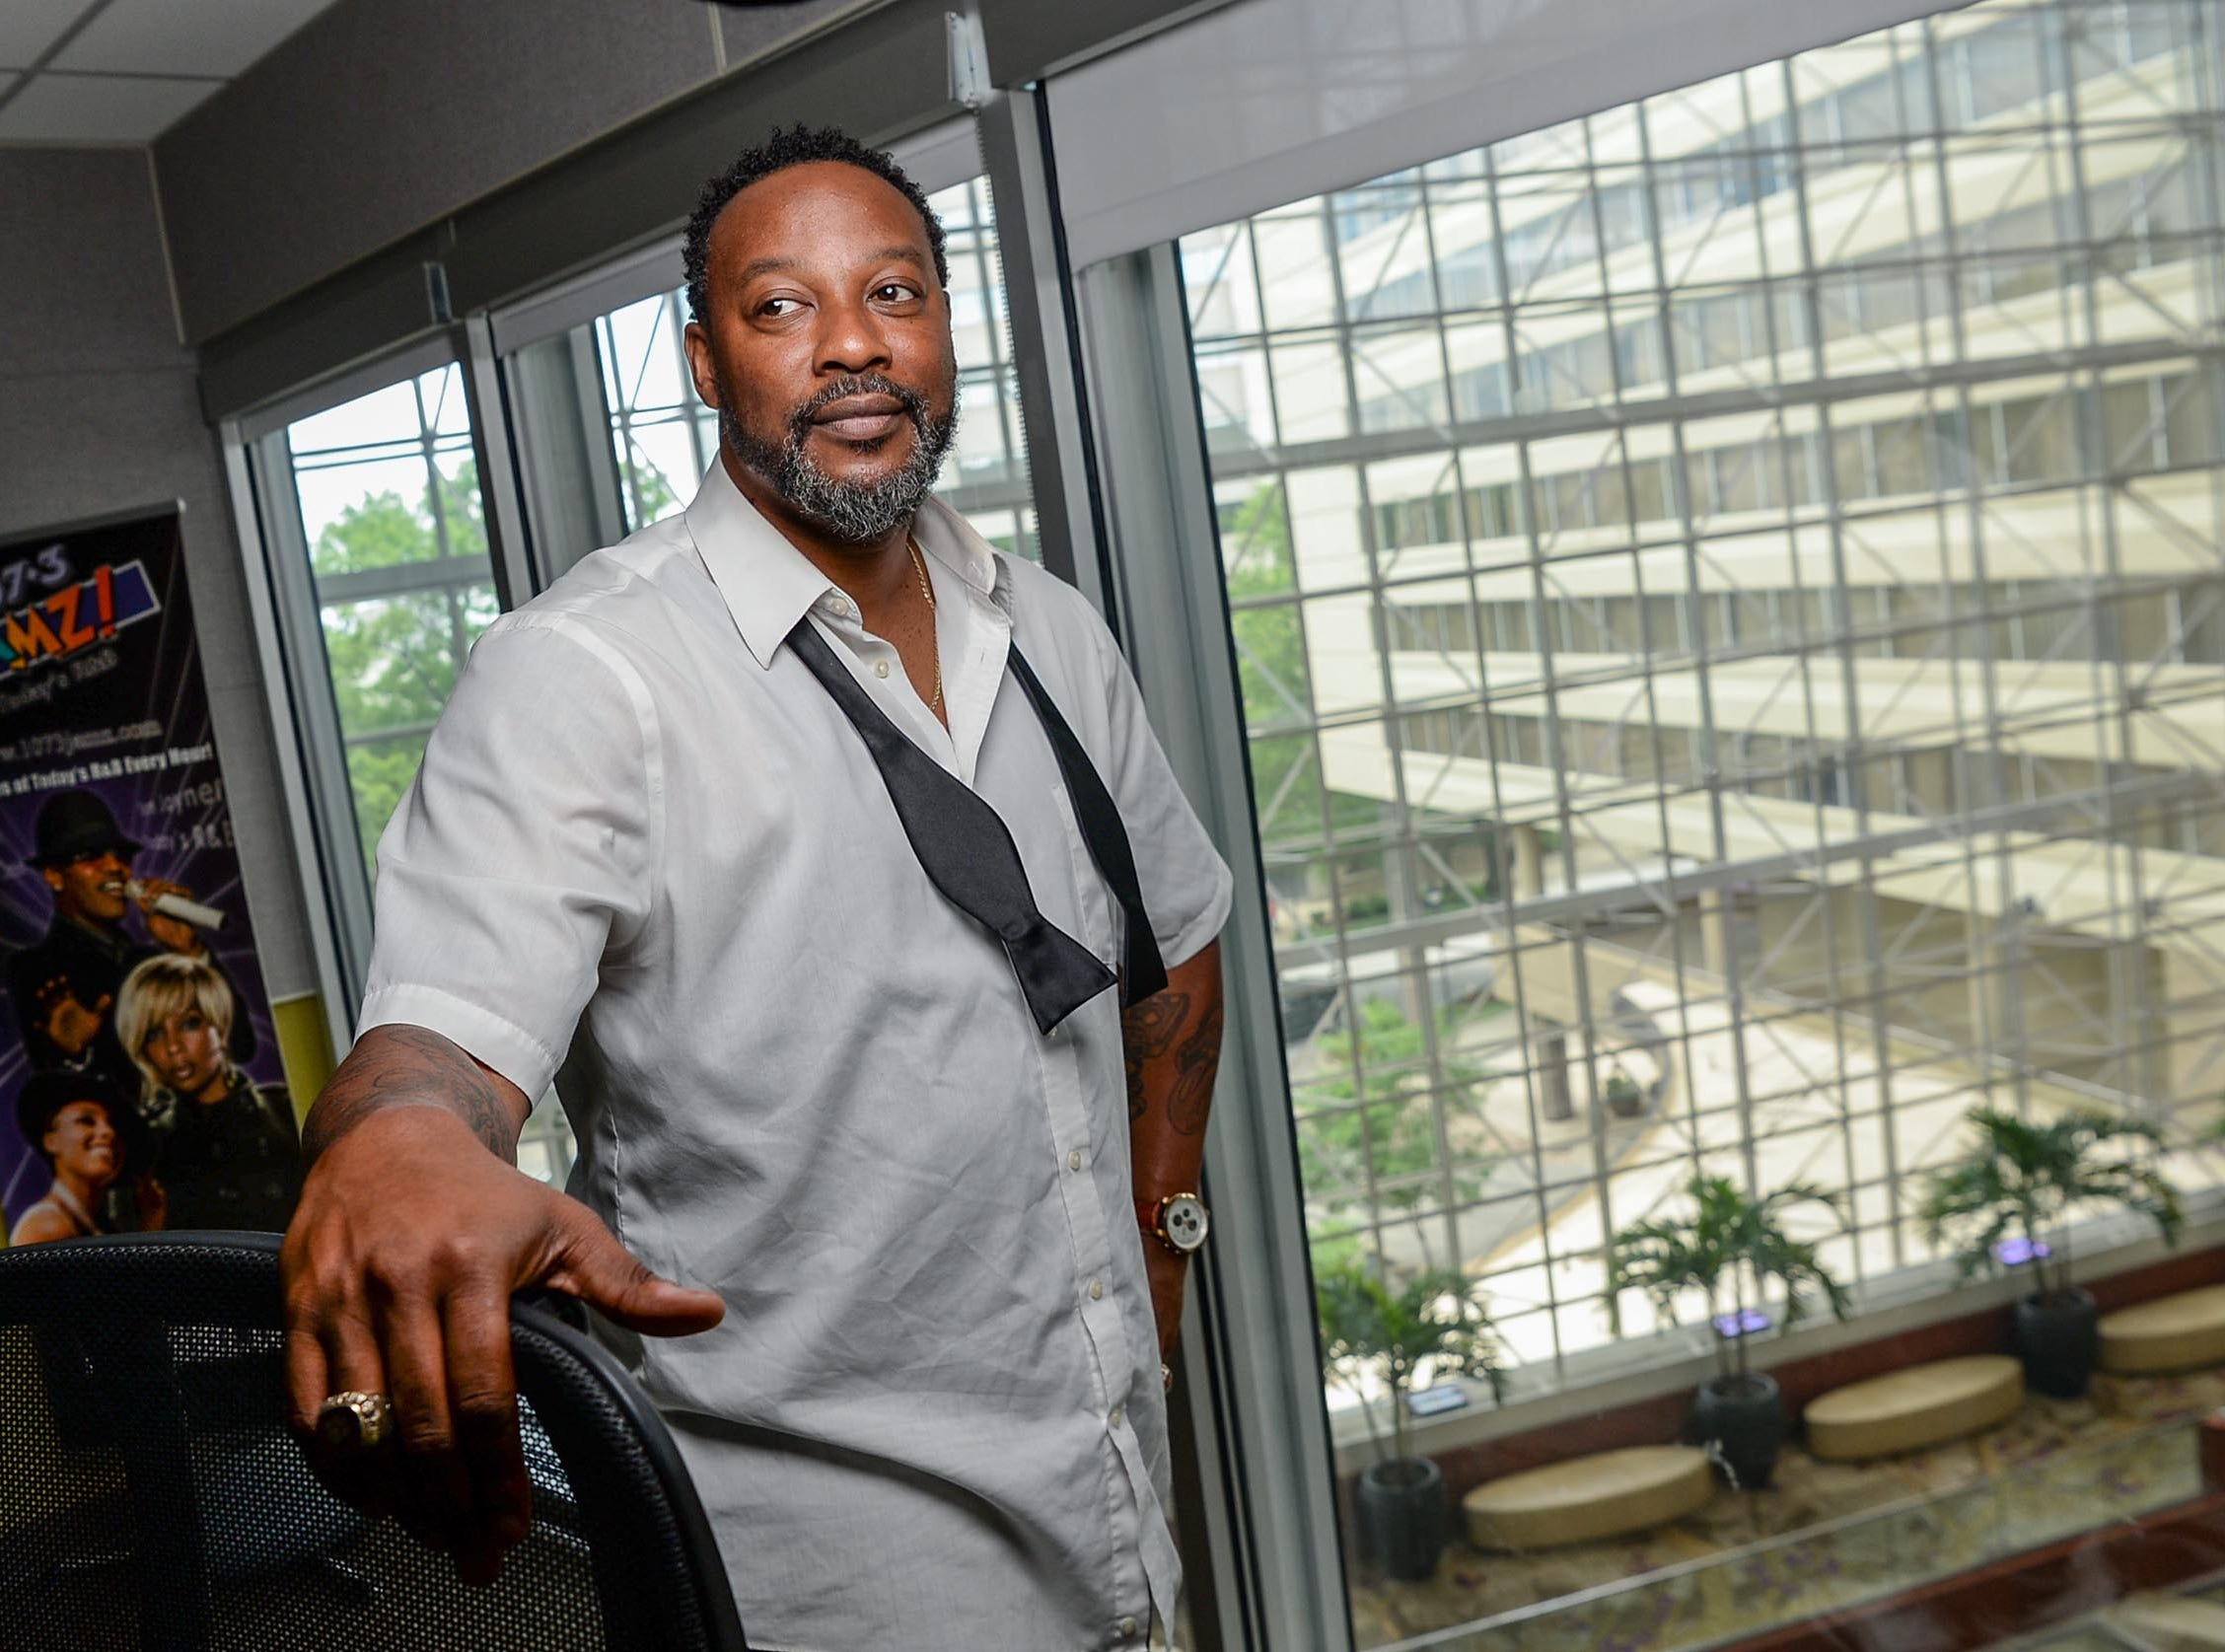 Tone Hollywood (Tony Wheeler) of 107.3 FM JAMZ in his studio office overlooking the Hyatt Regency atrium at the station in downtown Greenville in May 2019.